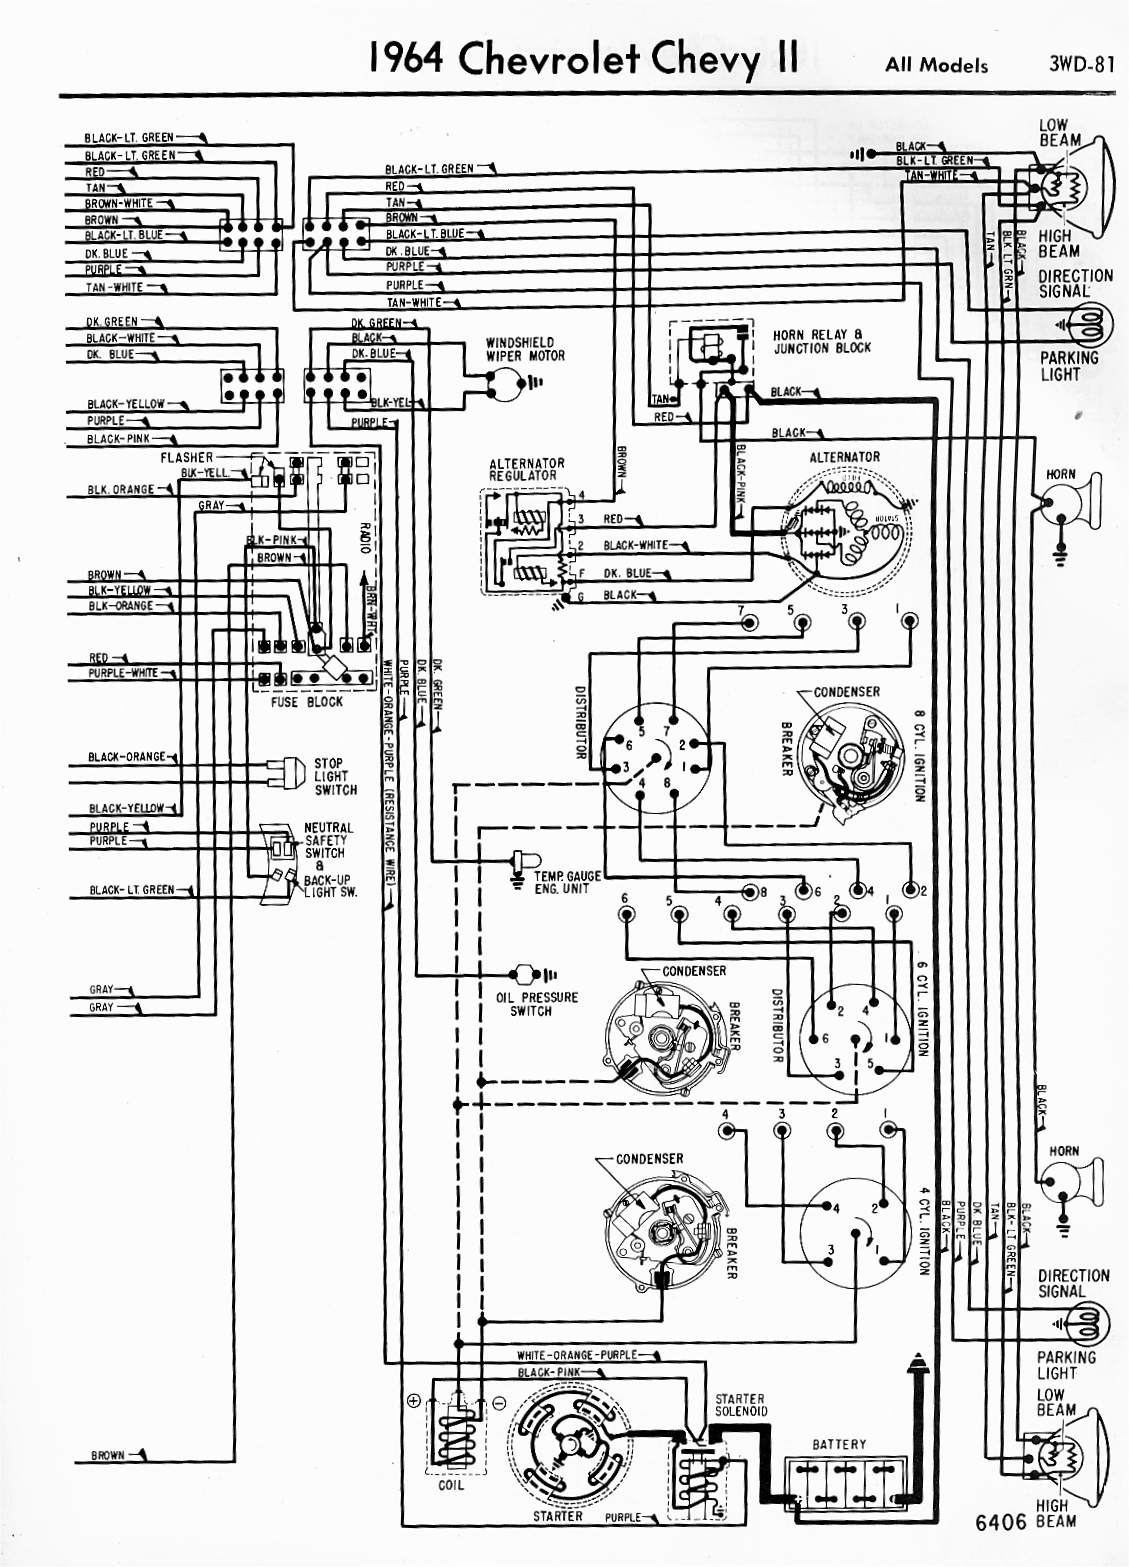 1979 corvette starter wiring diagram ez go golf cart 36 volt 57 - 65 chevy diagrams